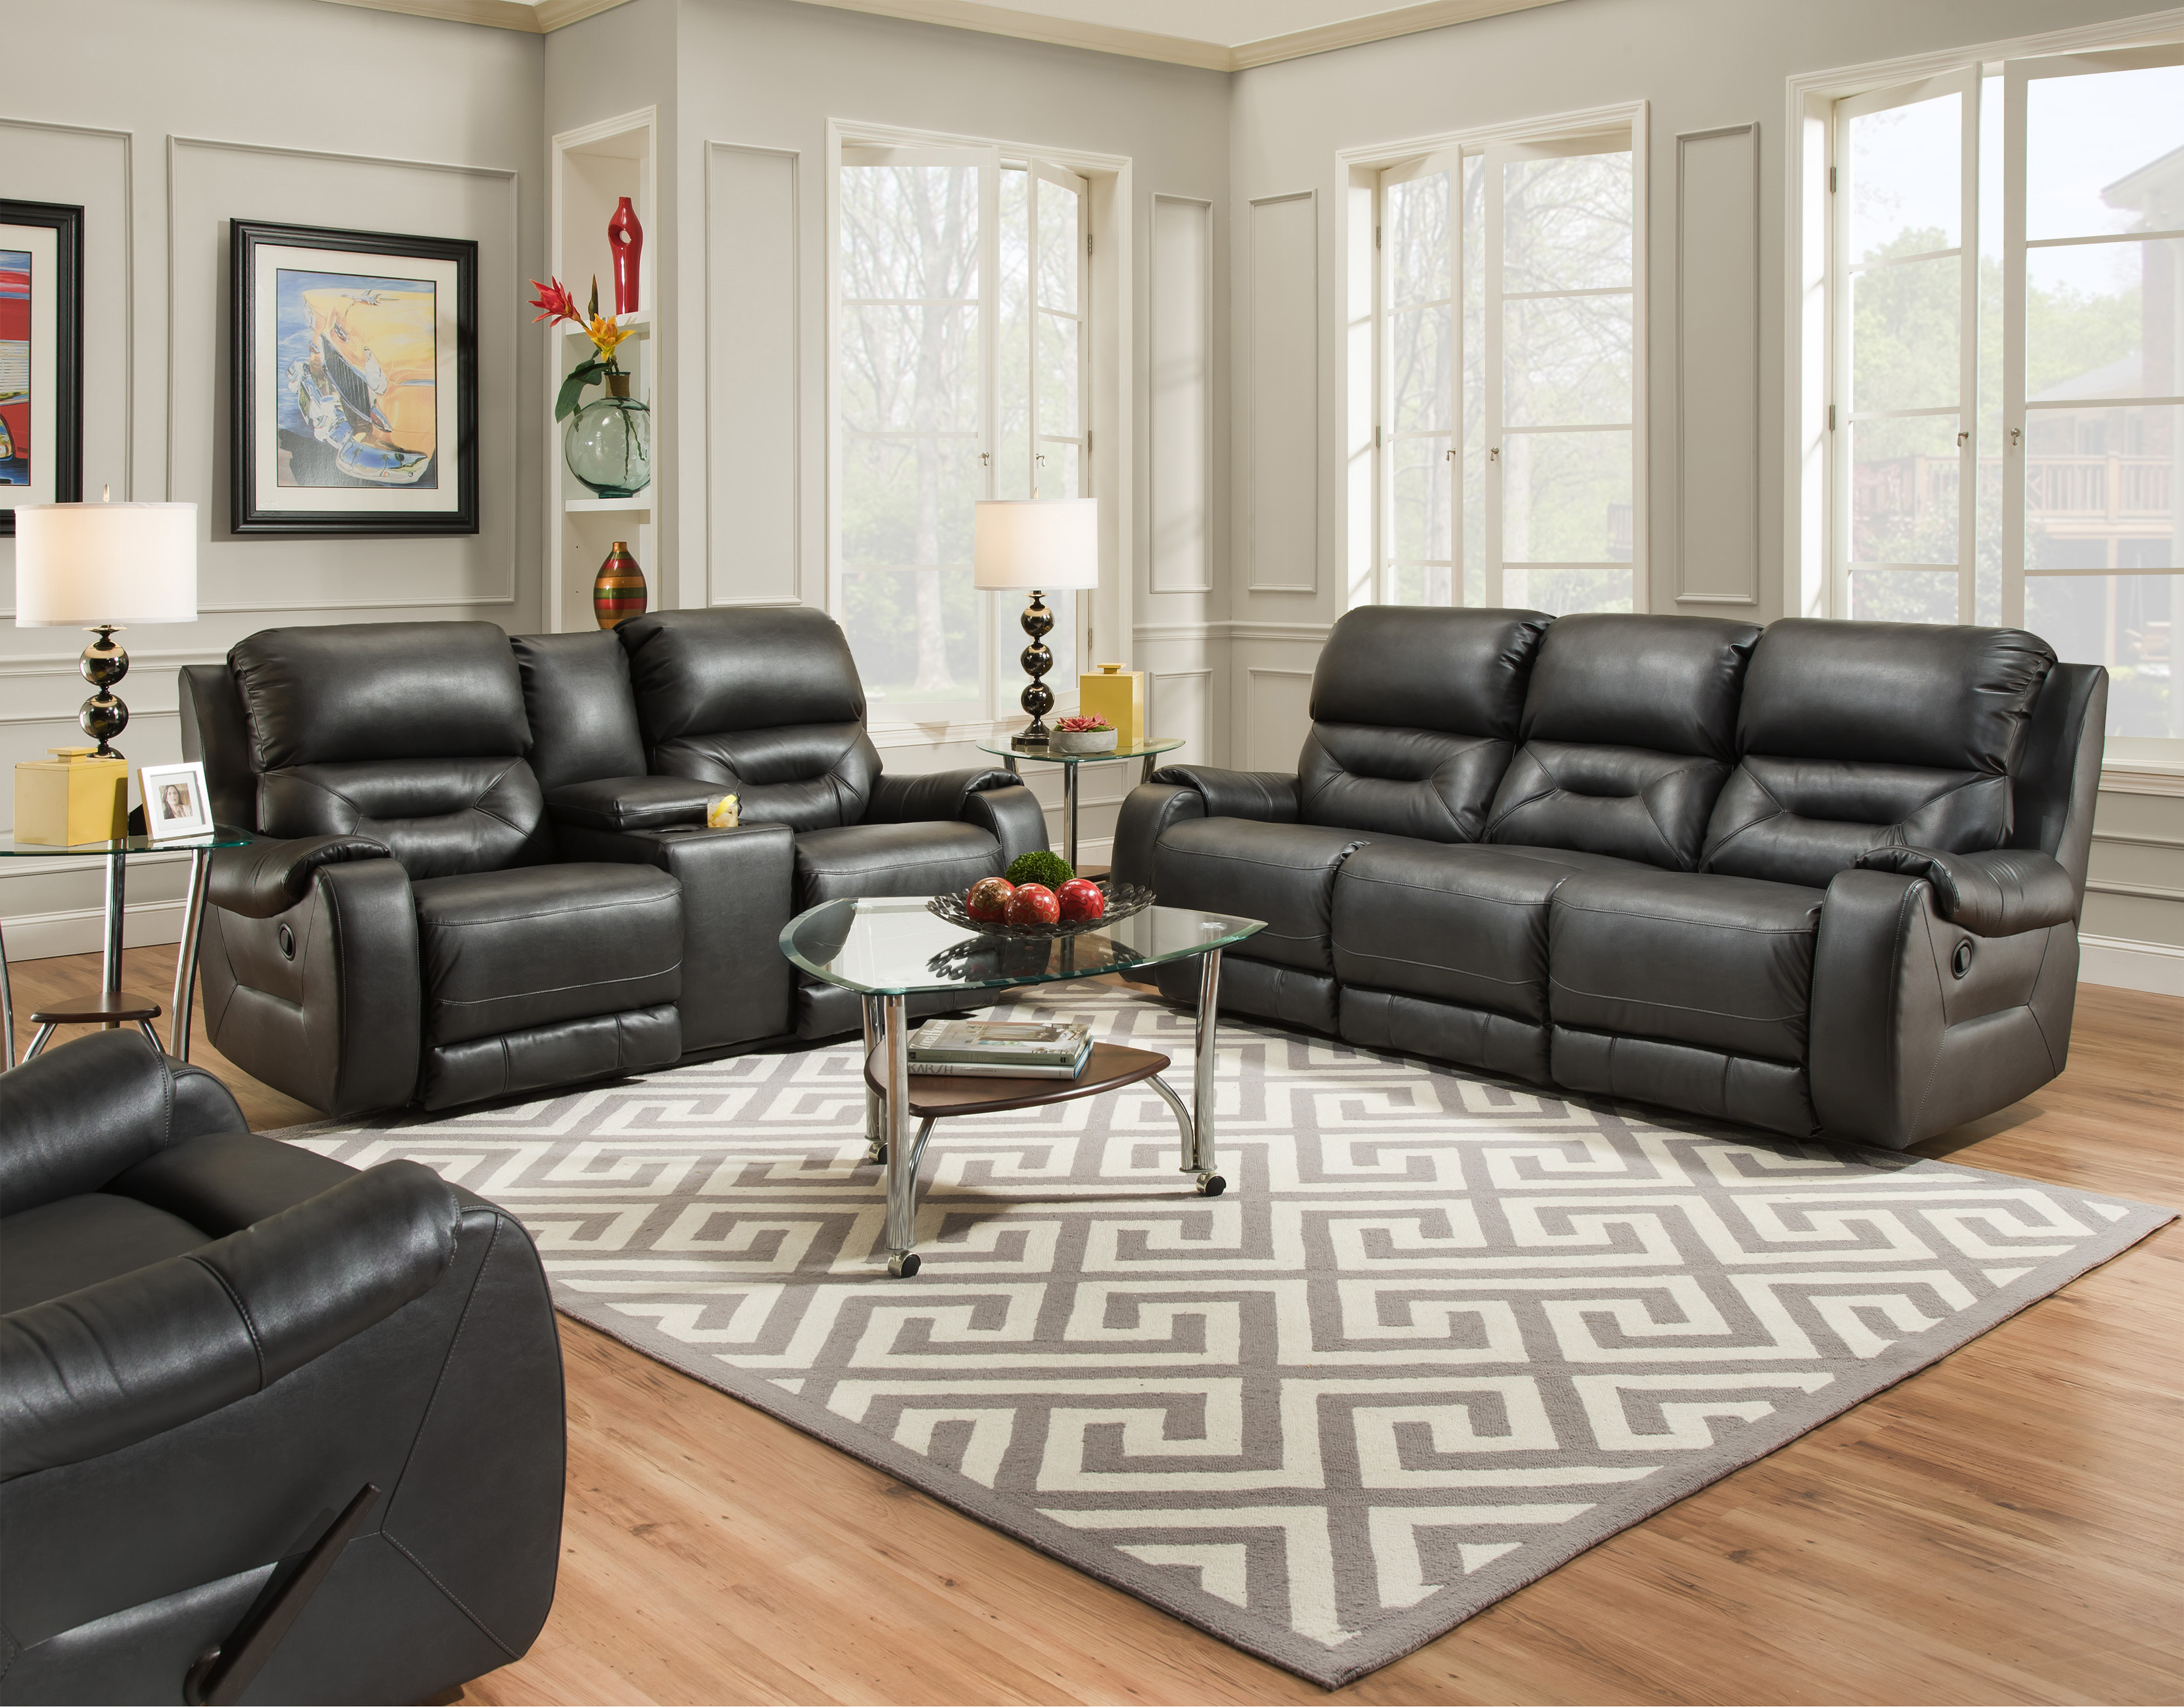 Miraculous Urban Reclining Sectional Choice Of Colors Sofas And Alphanode Cool Chair Designs And Ideas Alphanodeonline